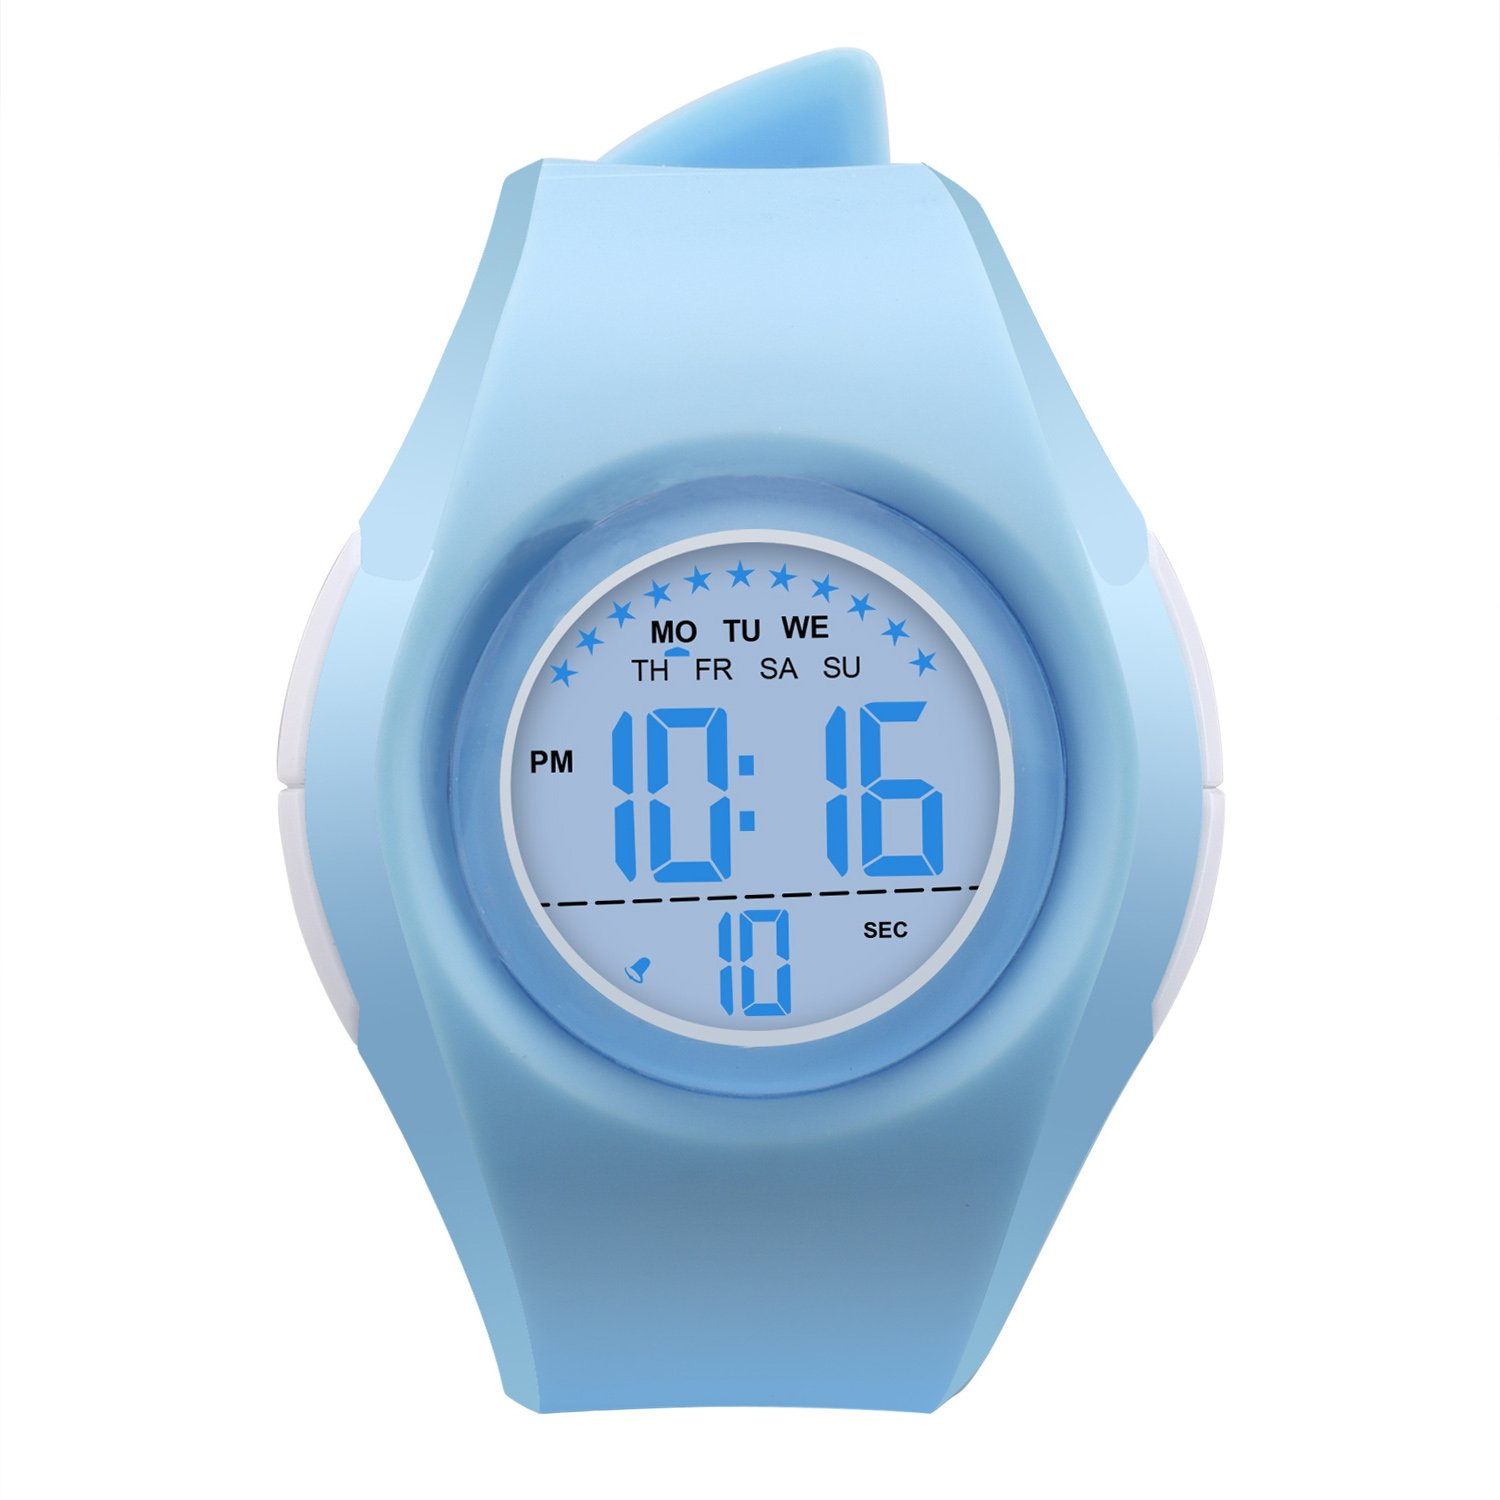 Kids Watch Waterproof Children Electronic Watch - Lighting Watch 50M Waterproof for Outdoor Sports,LED Digital Stopwatch with Chronograph, Alarm,Time Window Child Wrist Watch for Boys, Girls (Blue)